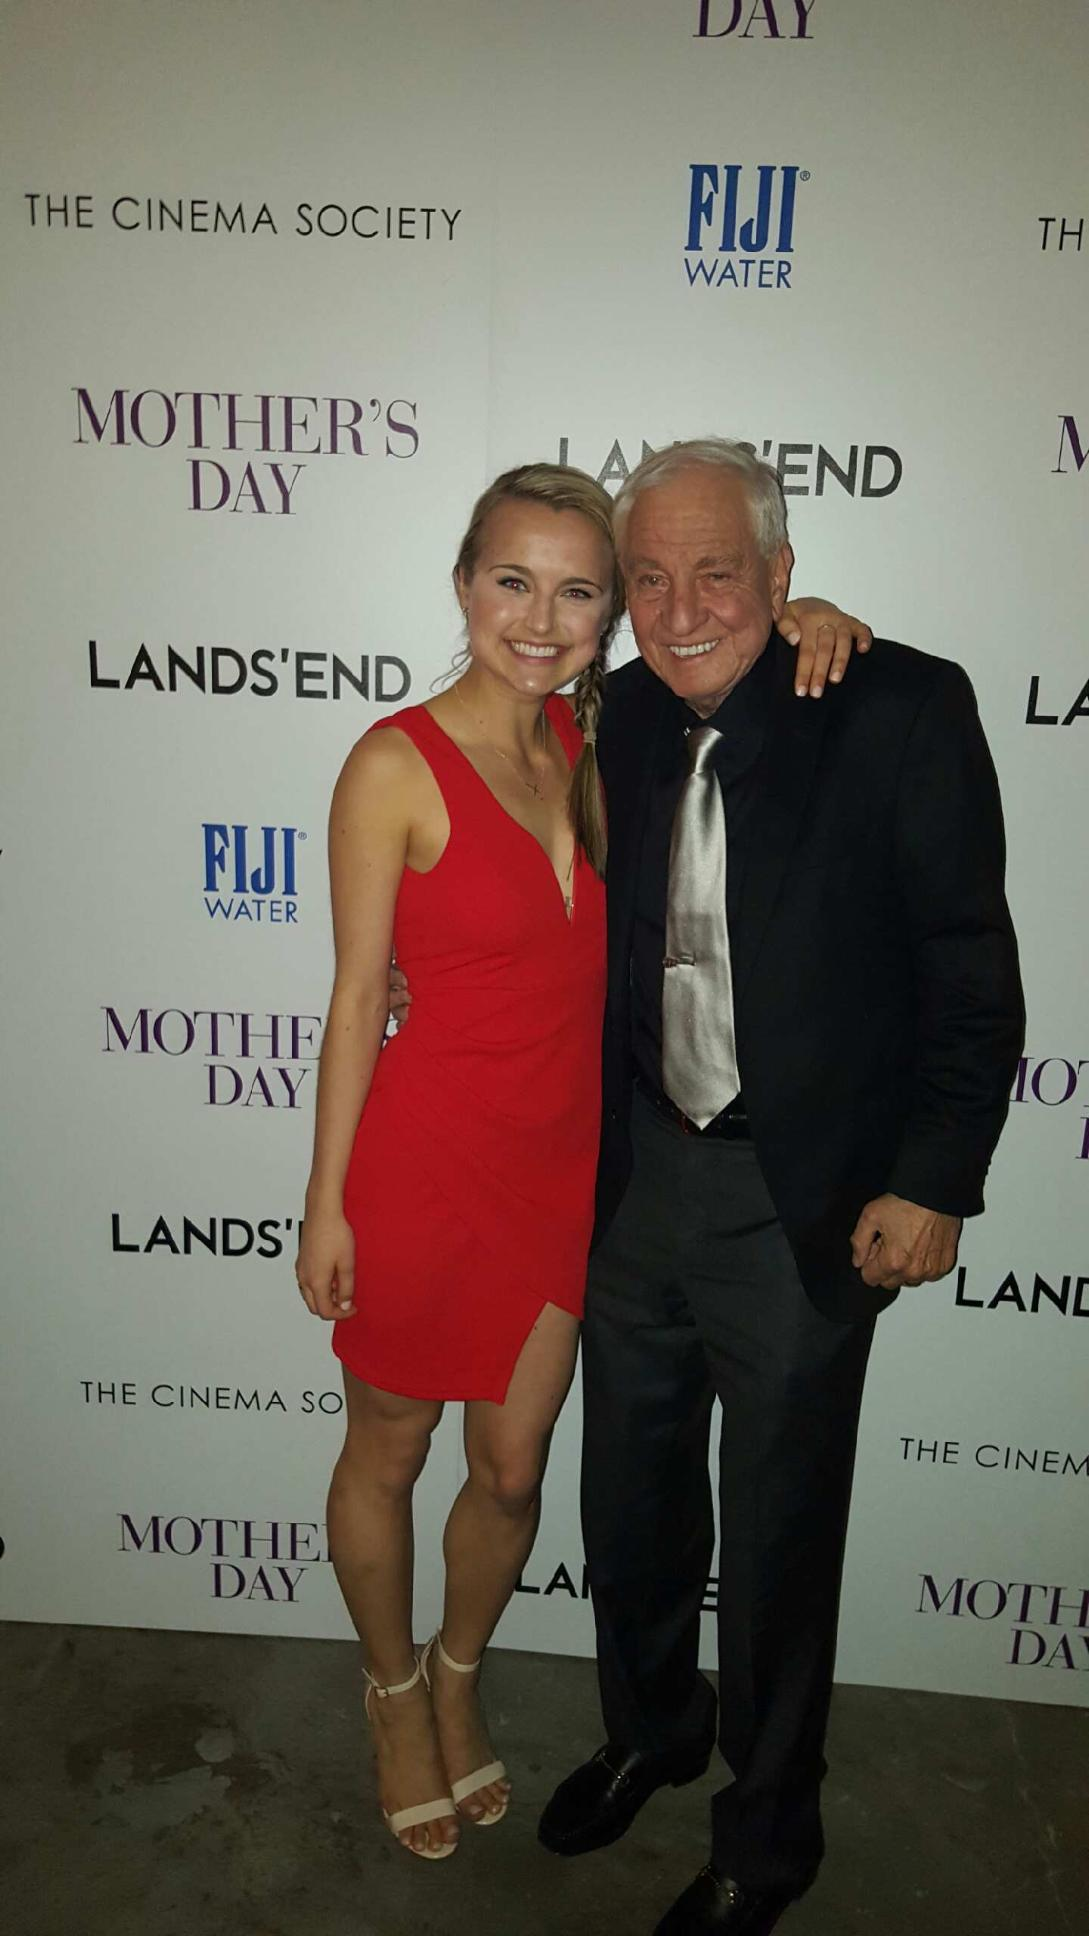 Mother's Day (w/ Garry Marshall)